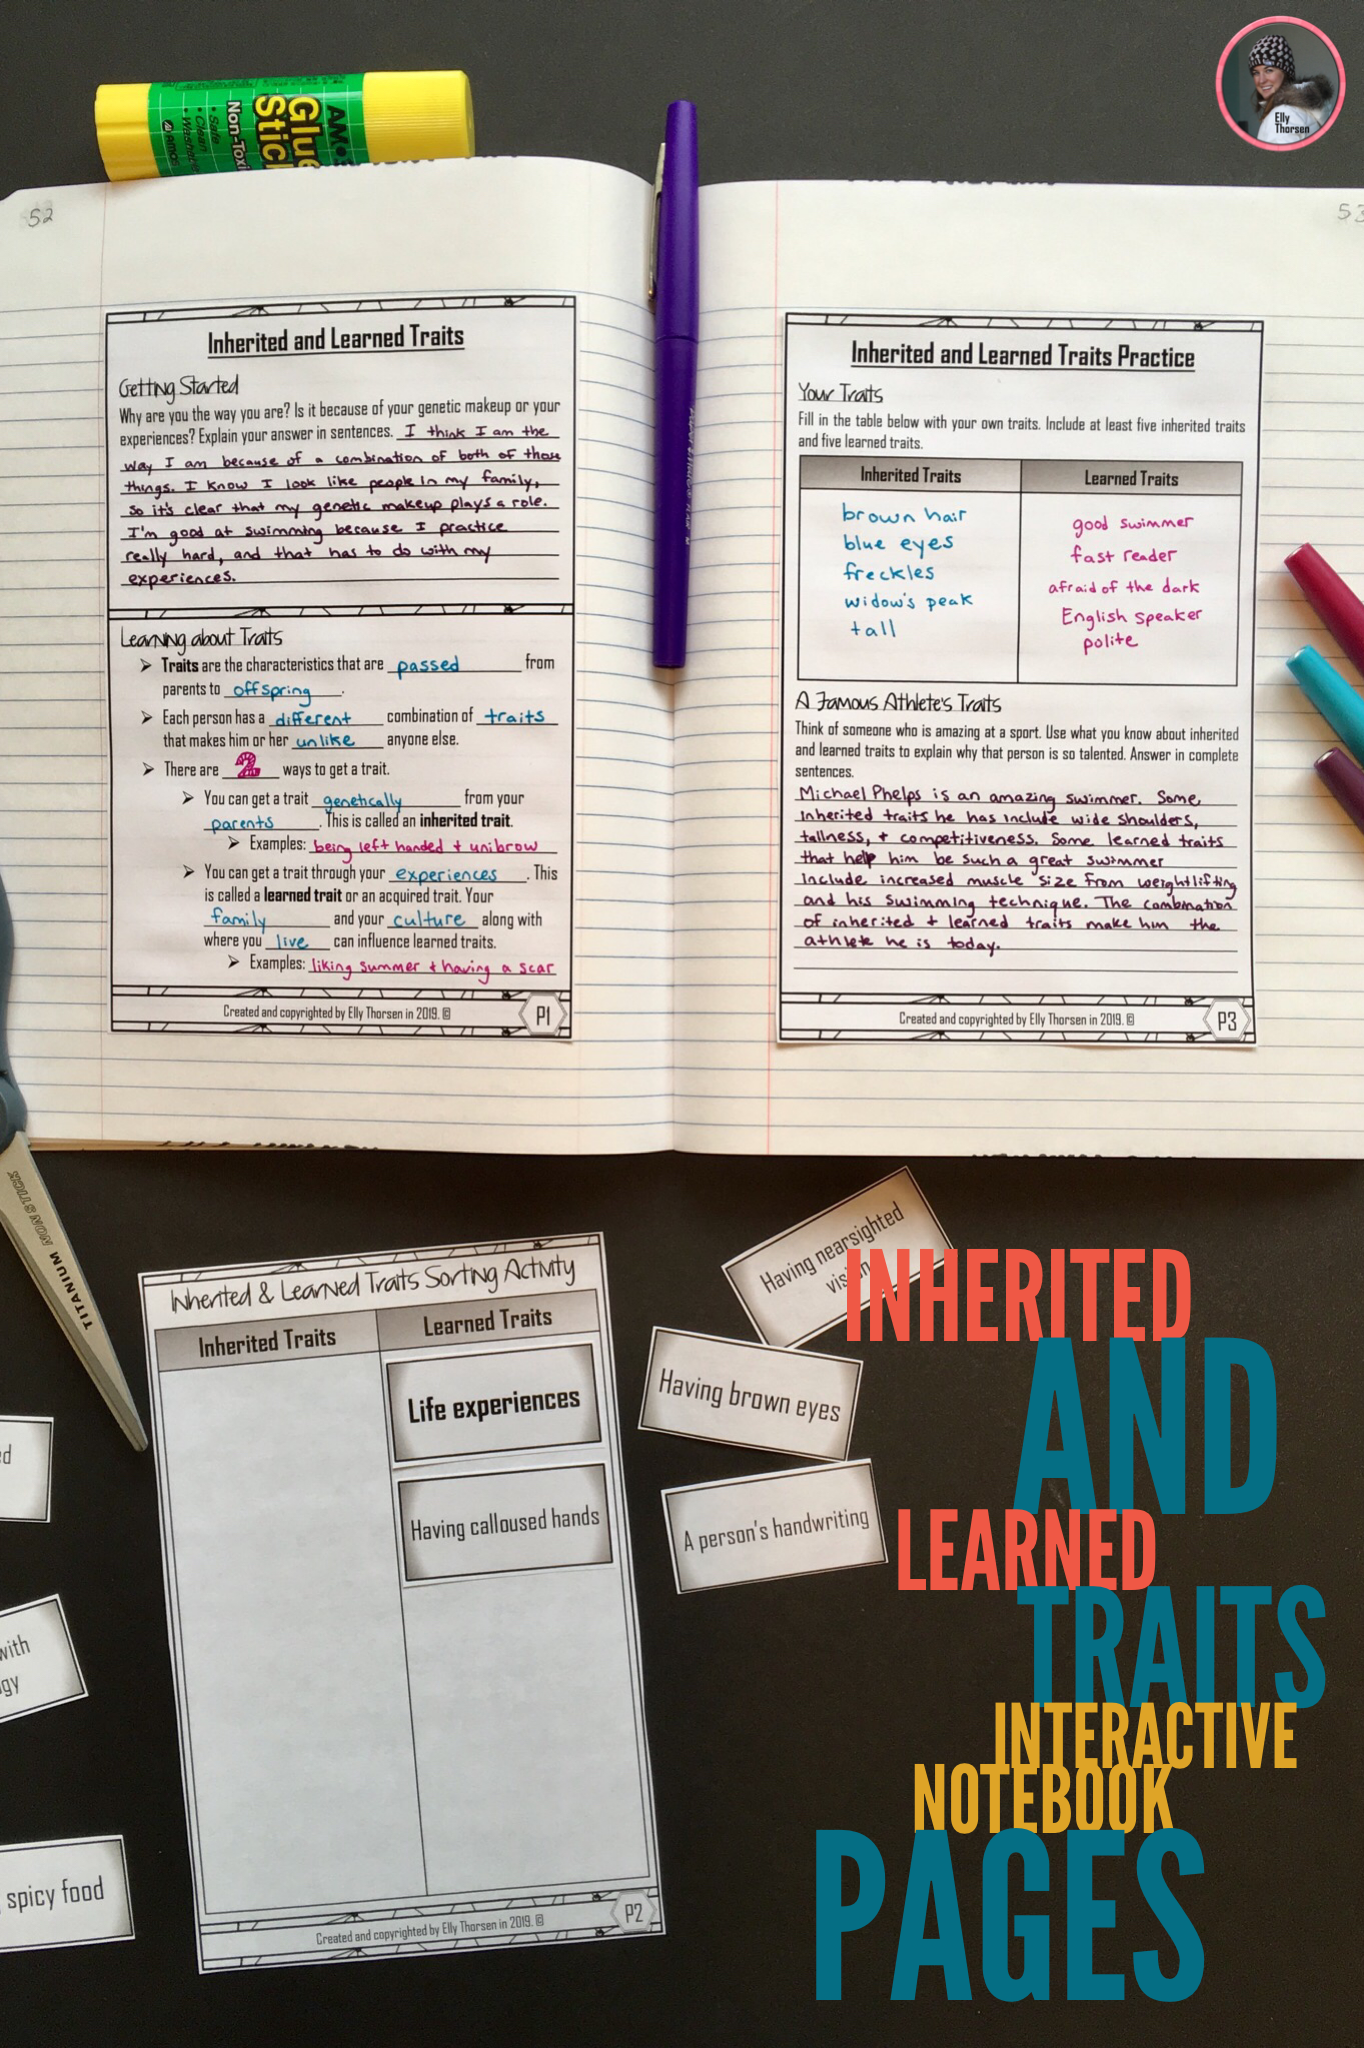 Inherited And Learned Traits Interactive Notebook Pages